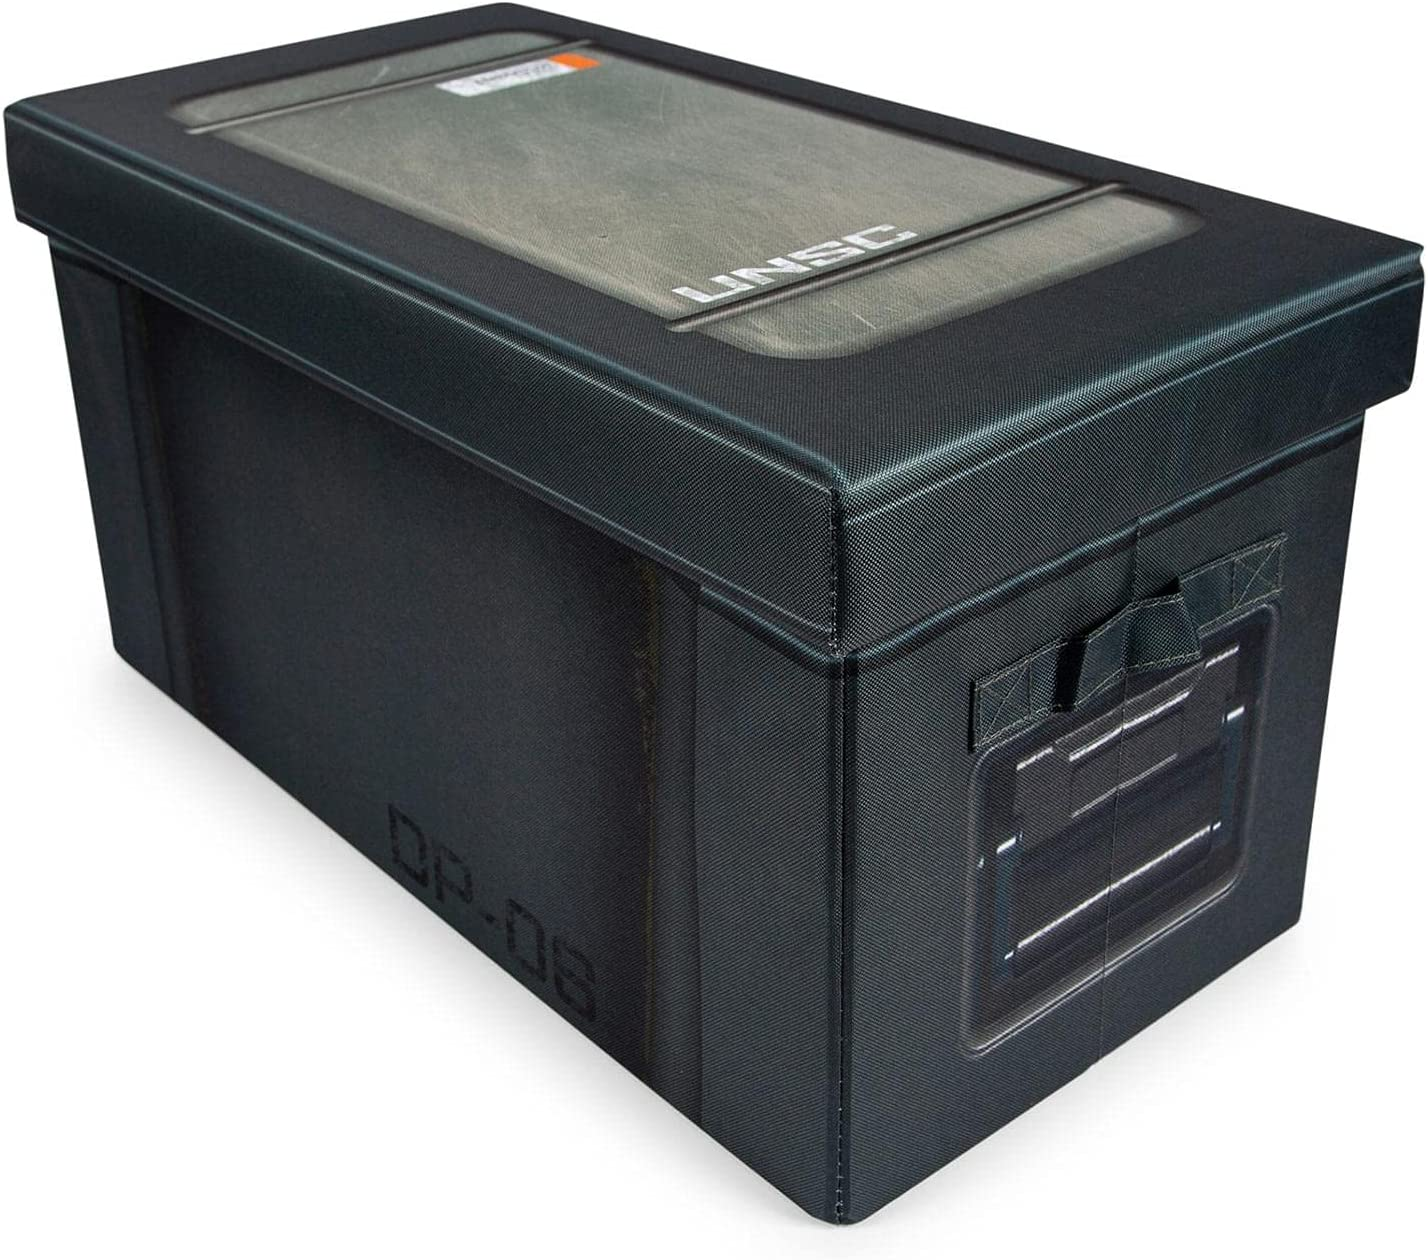 Ukonic Halo Sales results No. 1 UNSC store Footlocker Foldable Fabric Storage Chest Bask